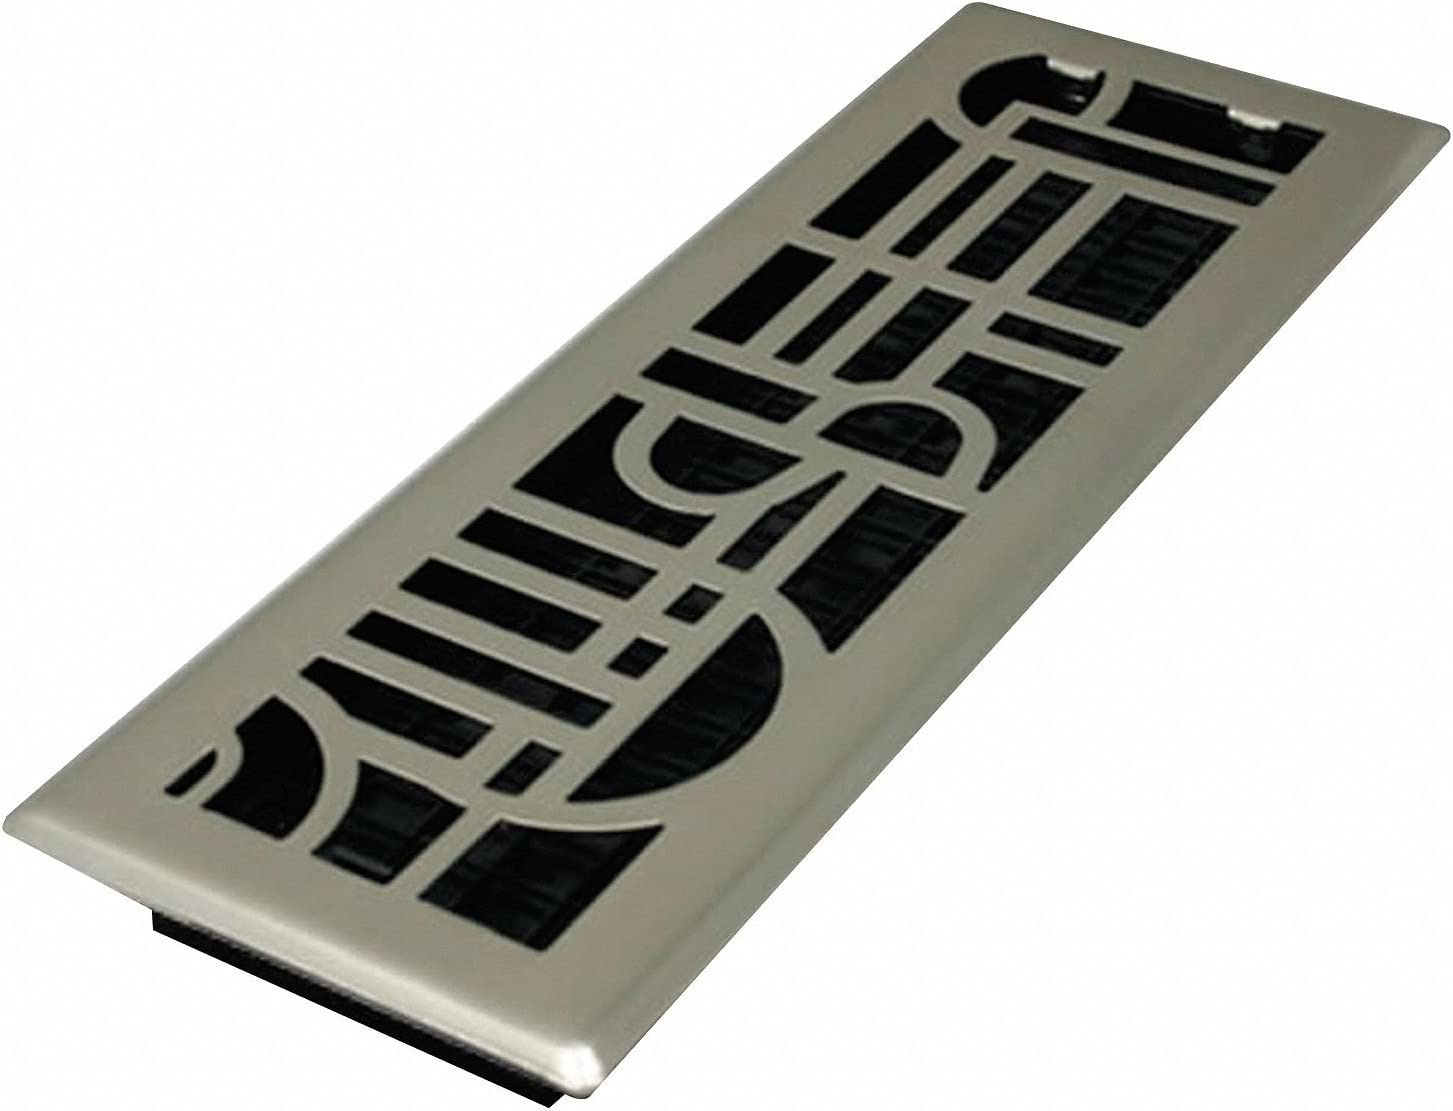 Decor Grates ADH414-NKL Art Deco Floor Register, Brushed Nickel, 4-Inch by 14-Inch by Decor Grates